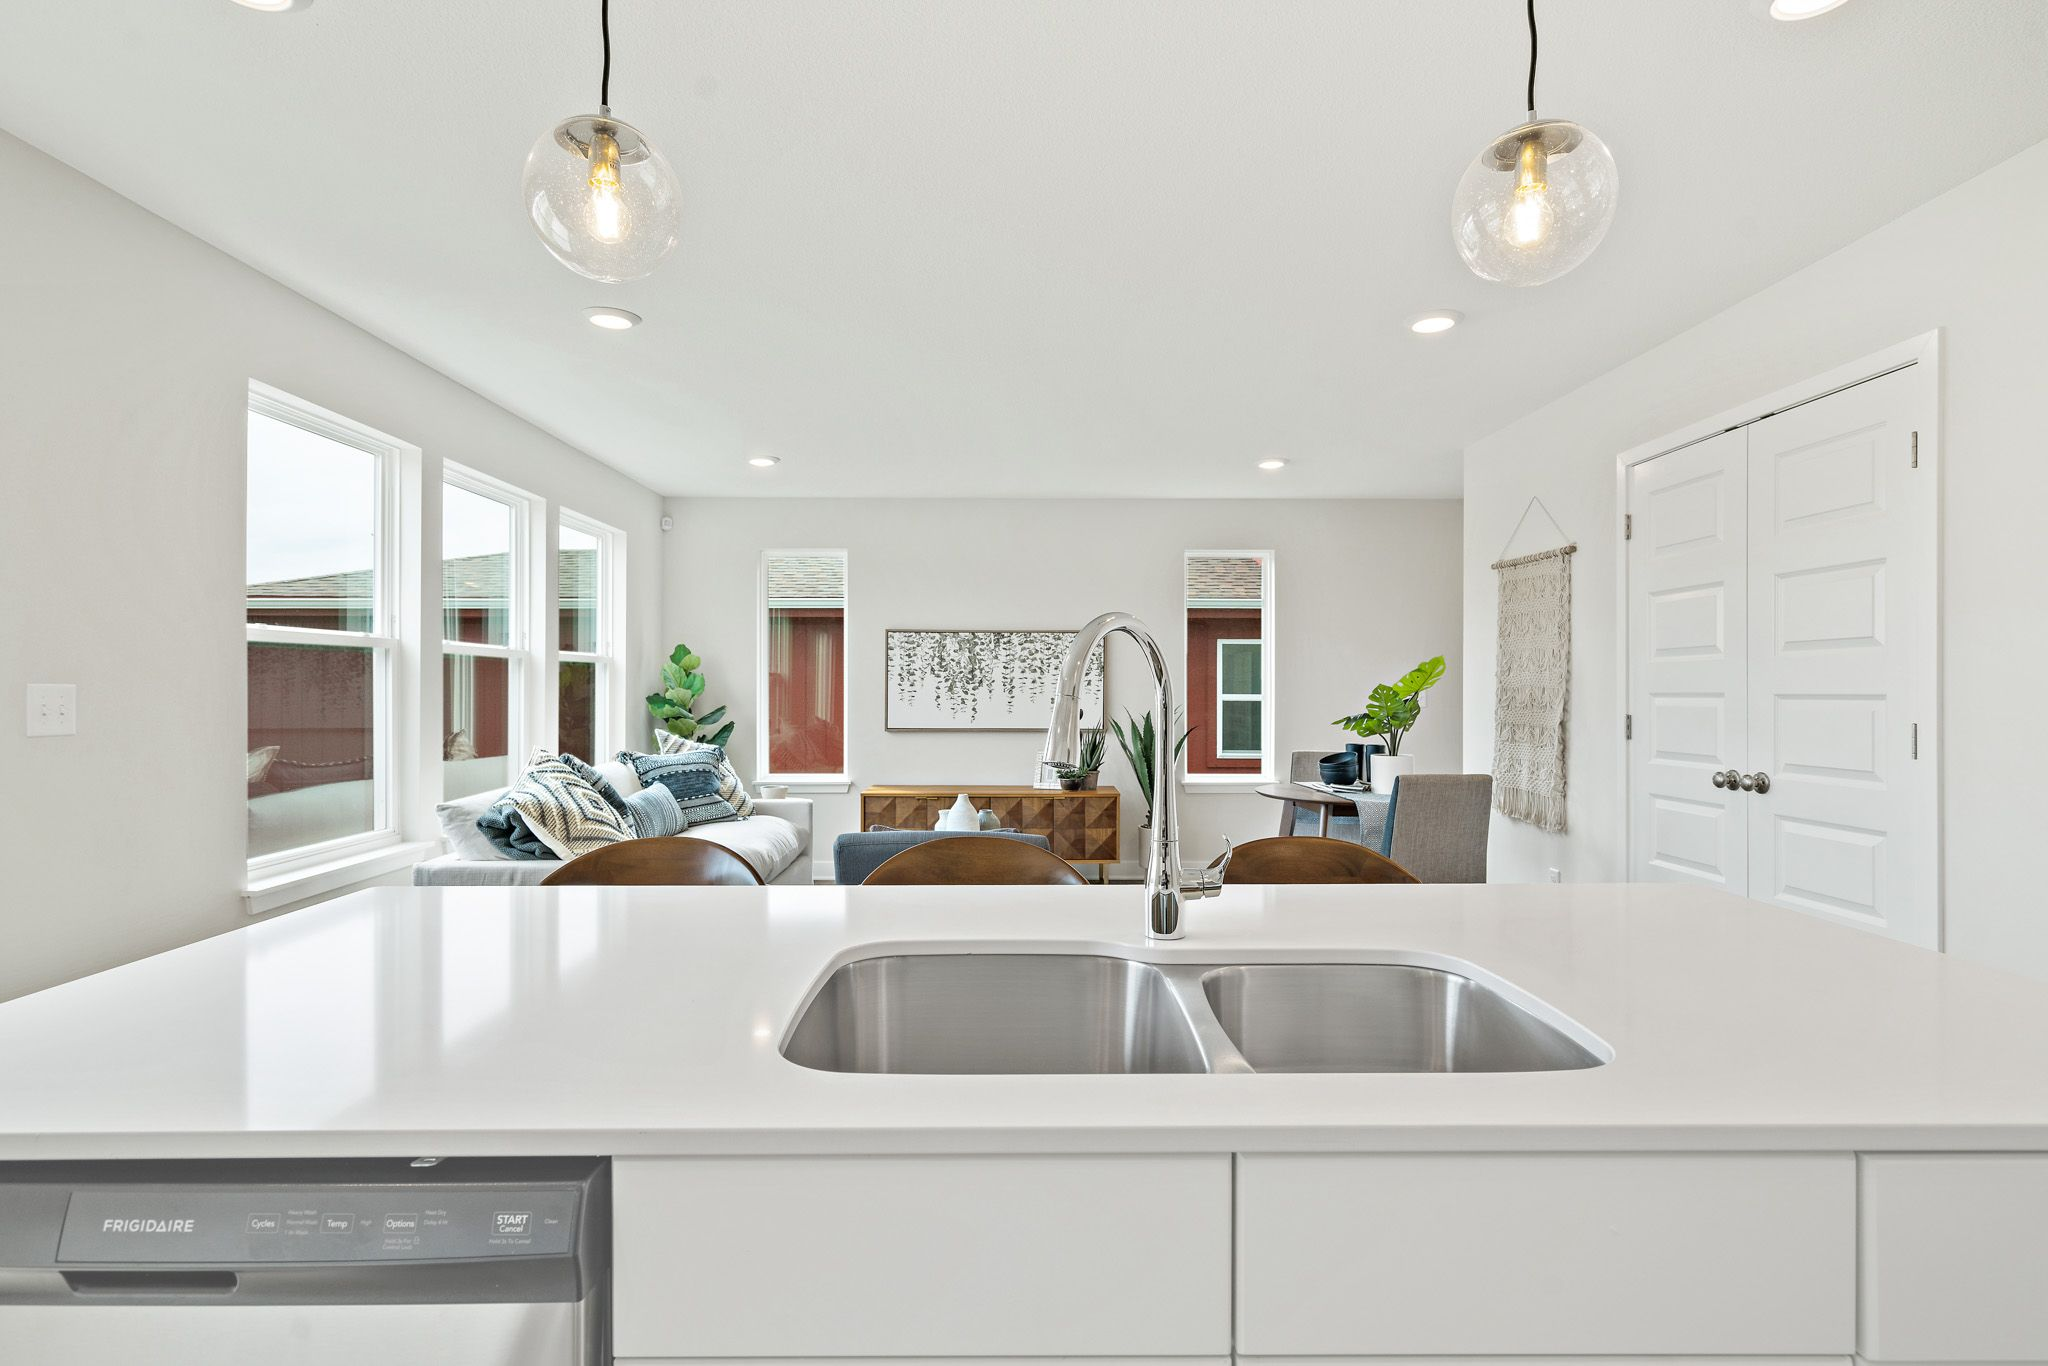 Kitchen featured in the indigo By clover & hive in Des Moines, IA